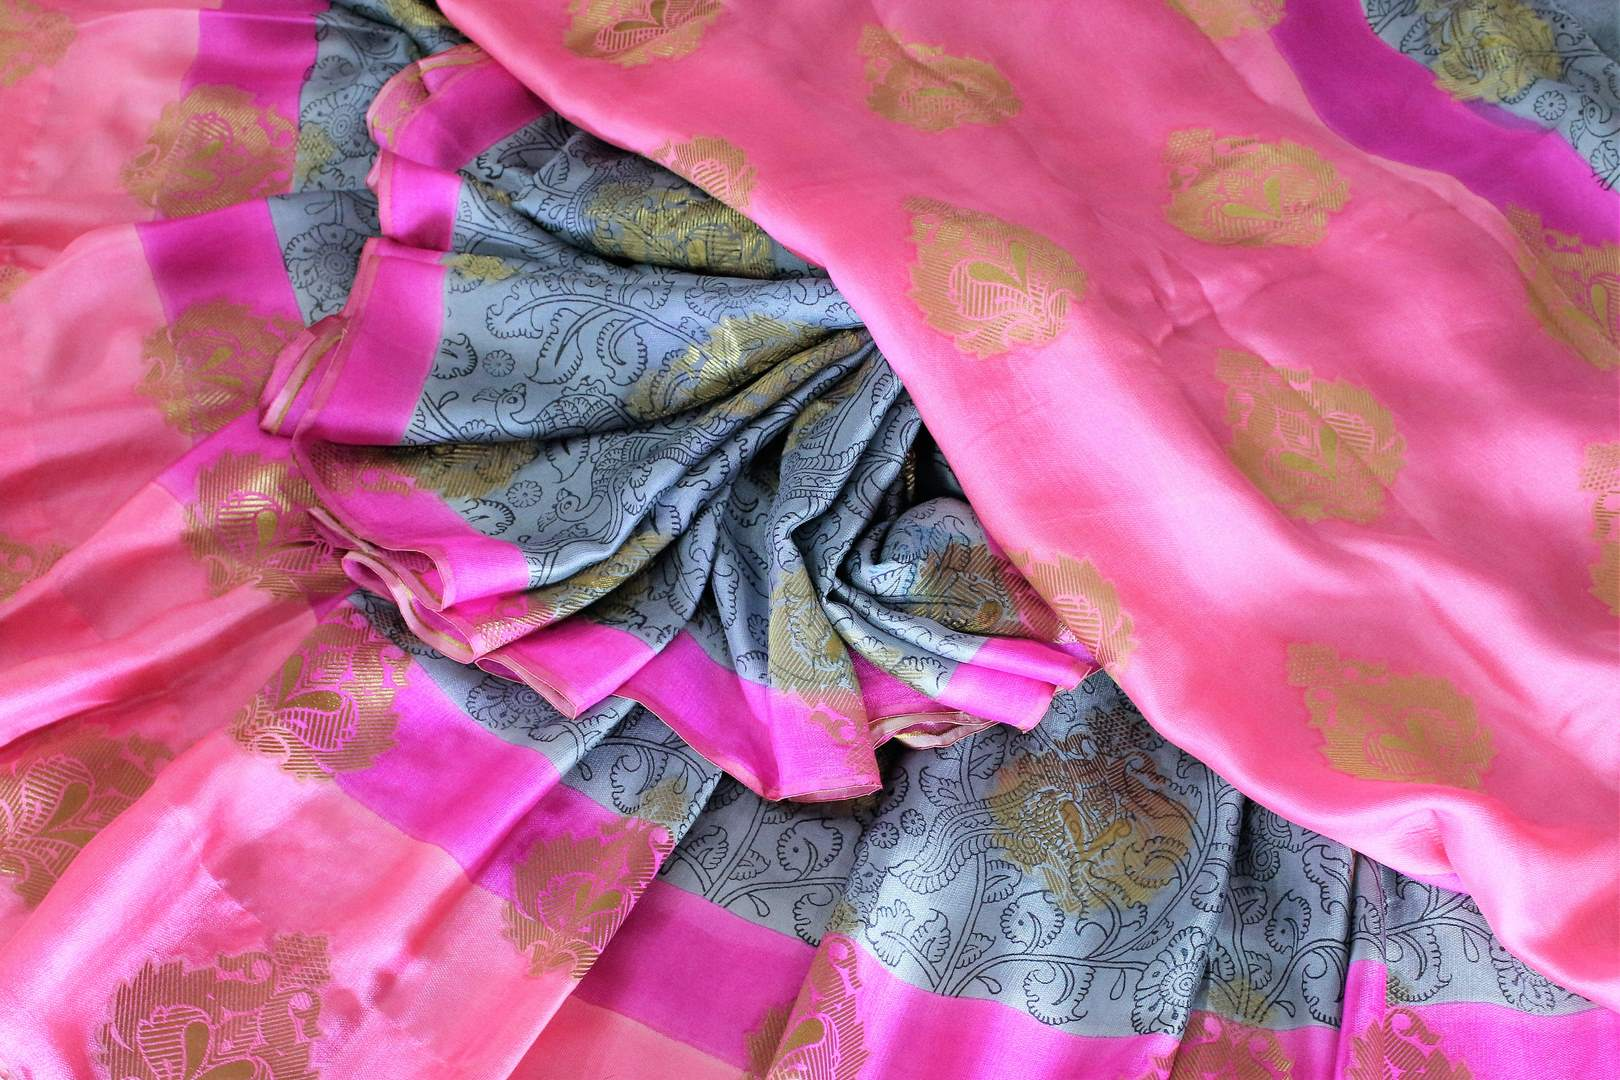 Savour the graceful grey floral printed half-half designer mulberry silk sari. The gorgeous zari detailing all over the saree with contrast rose pink combination in the blouse is striking enough to get drooling. Shop such festive traditional silk sarees online or visit Pure Elegance store in USA. -details